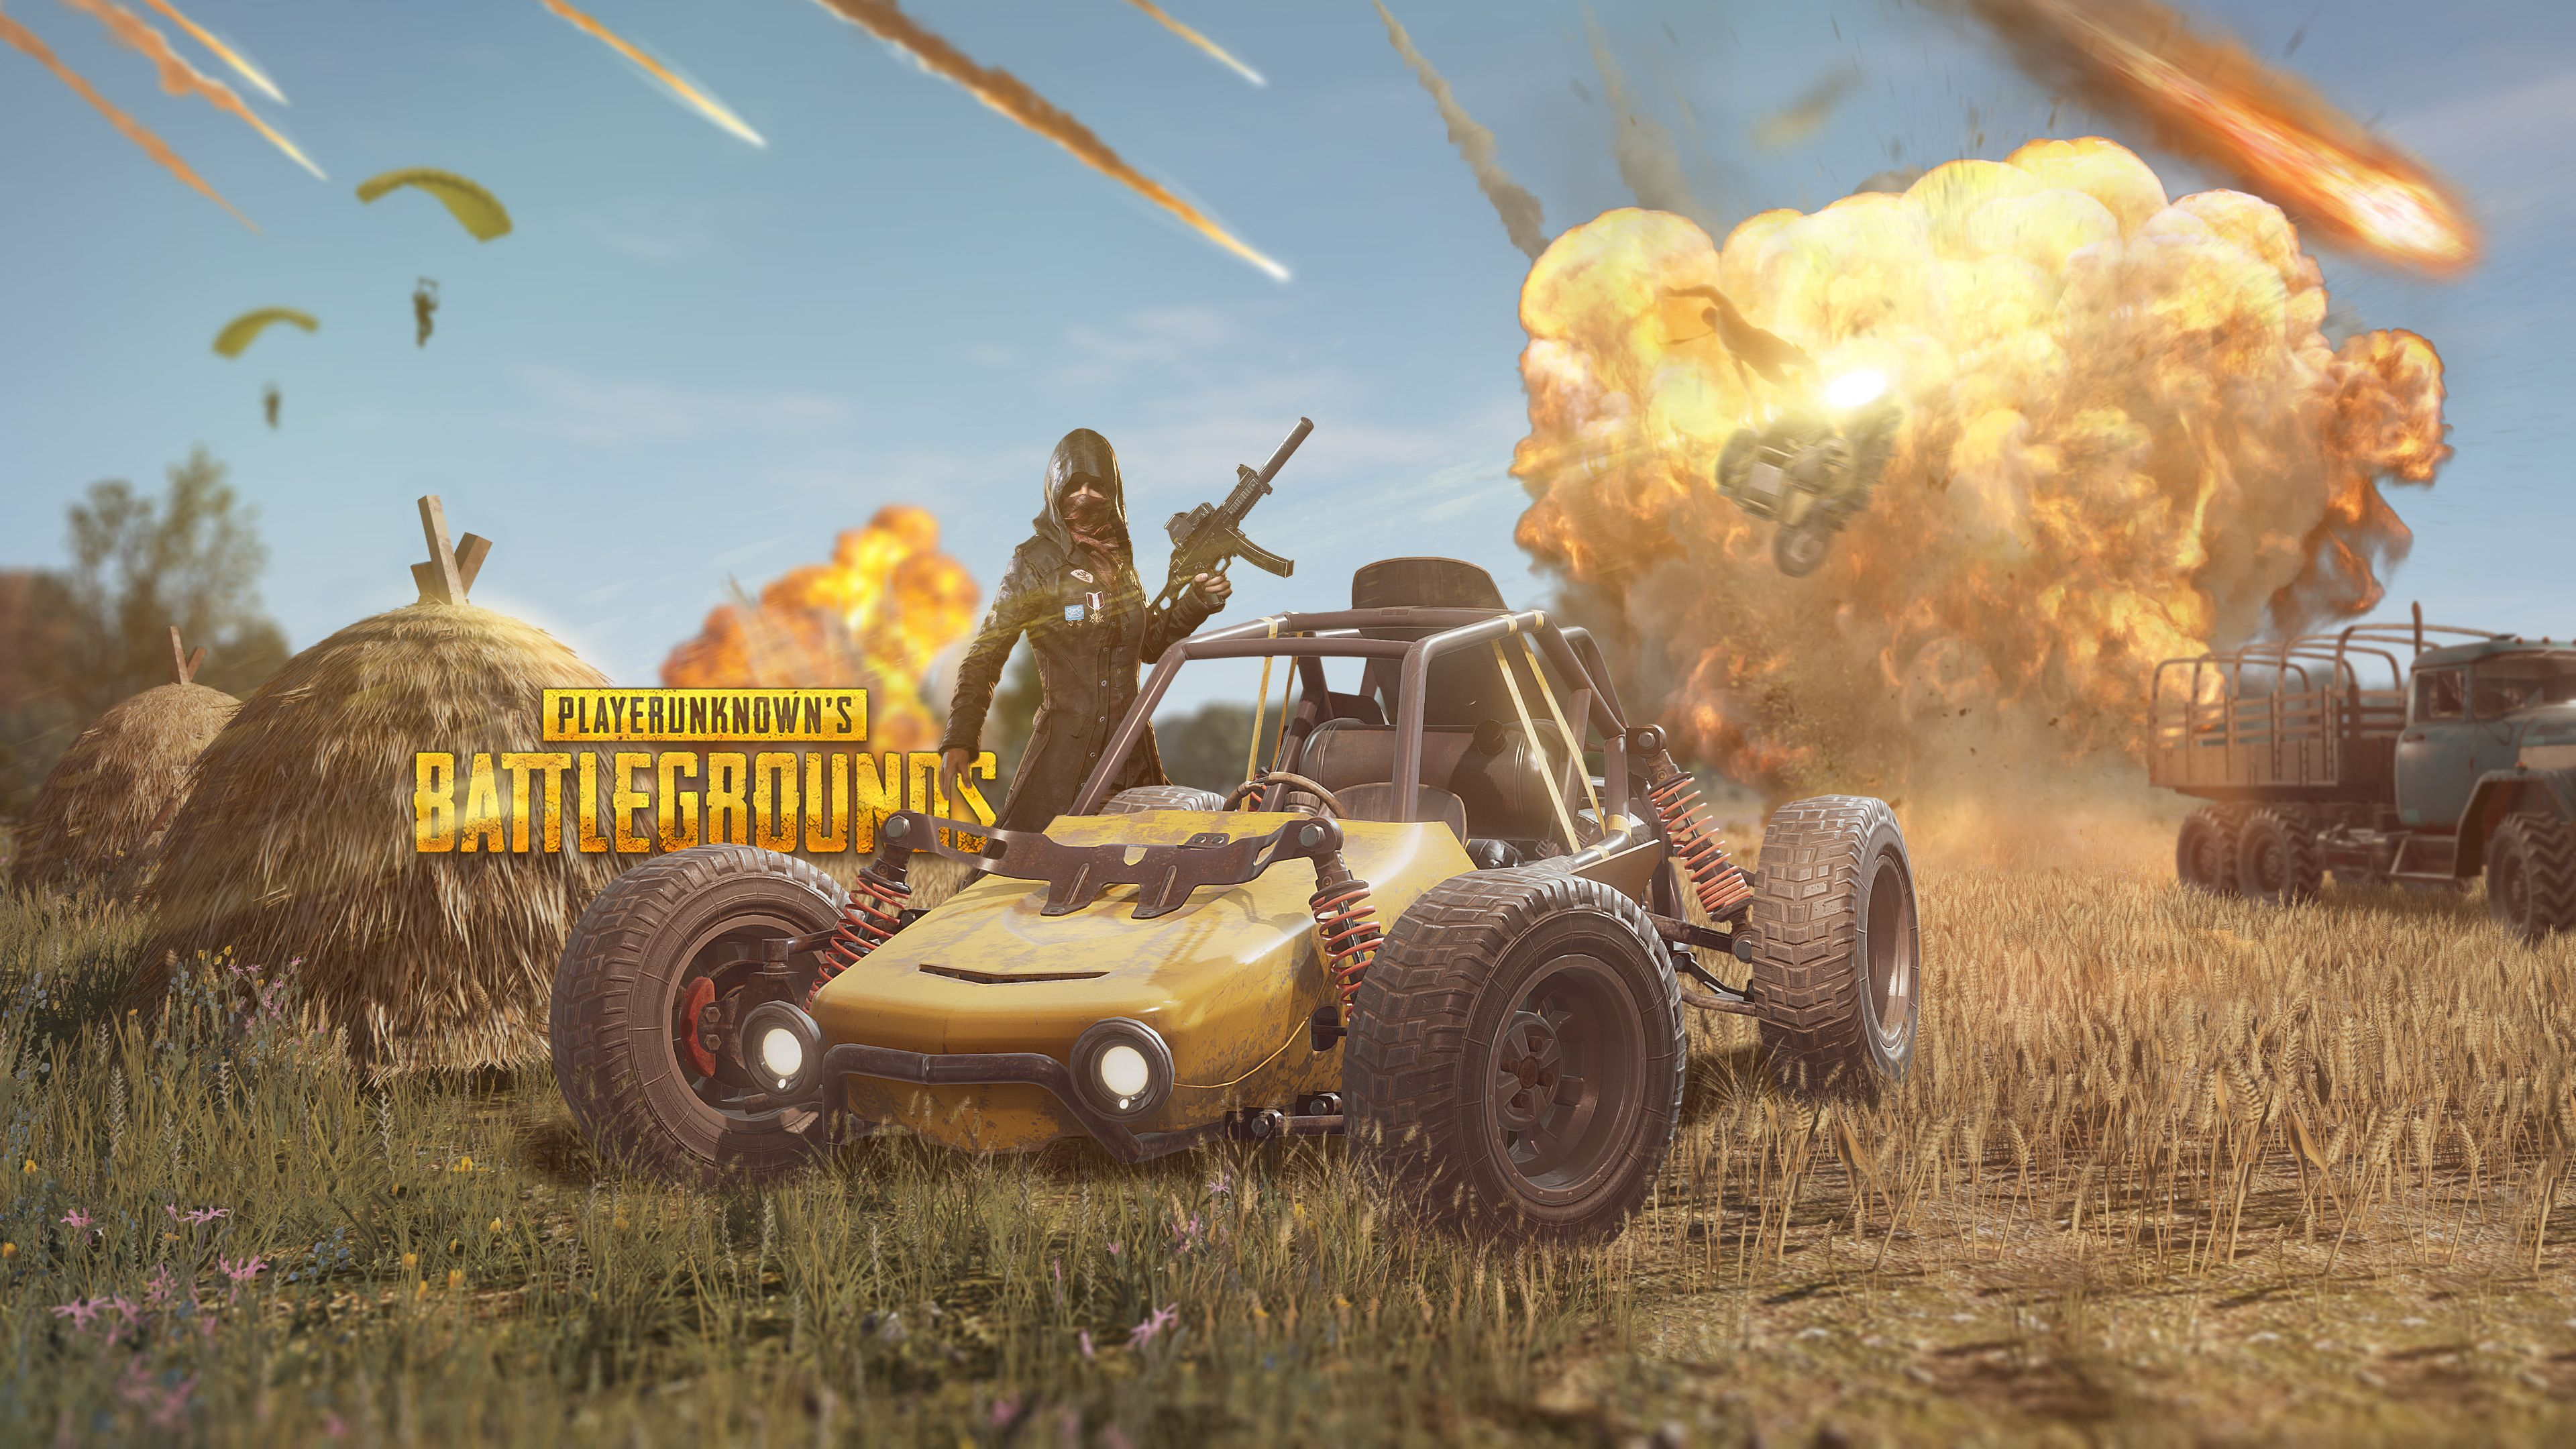 Pubg Hd For Pc: Pubg Wallpapers Widescreen On Wallpaper 1080p HD